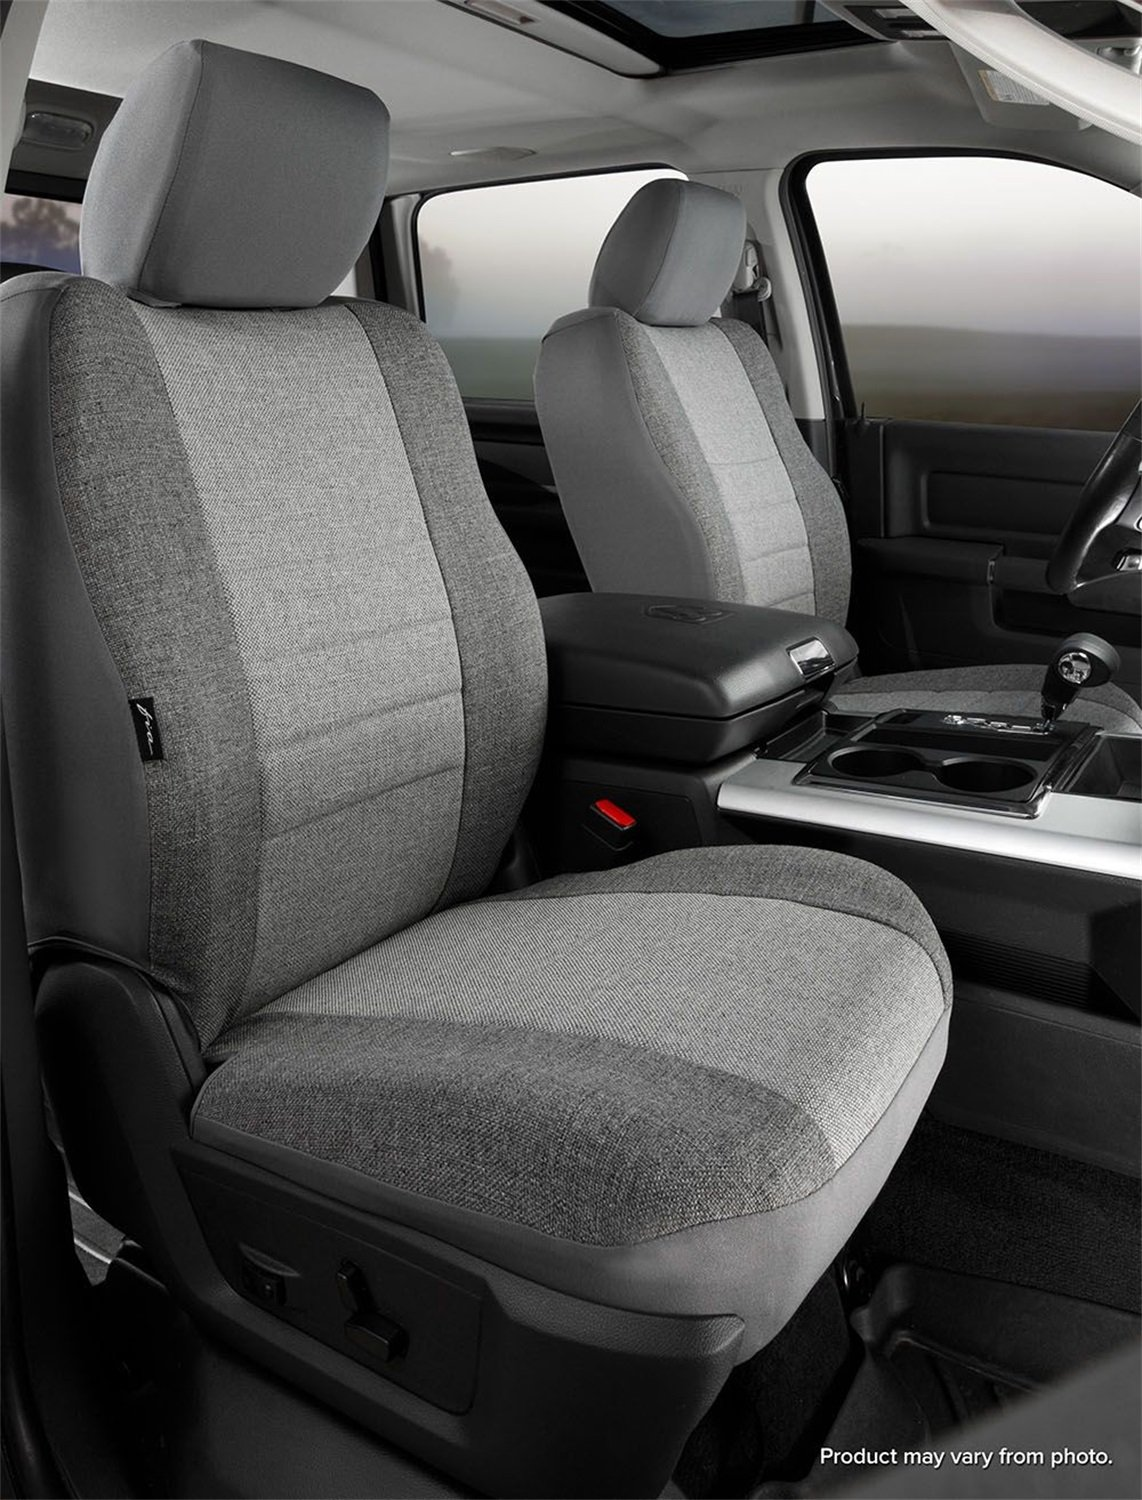 Gray Fia OE38-28 GRAY Custom Fit Front Seat Cover Bucket Seats Tweed,